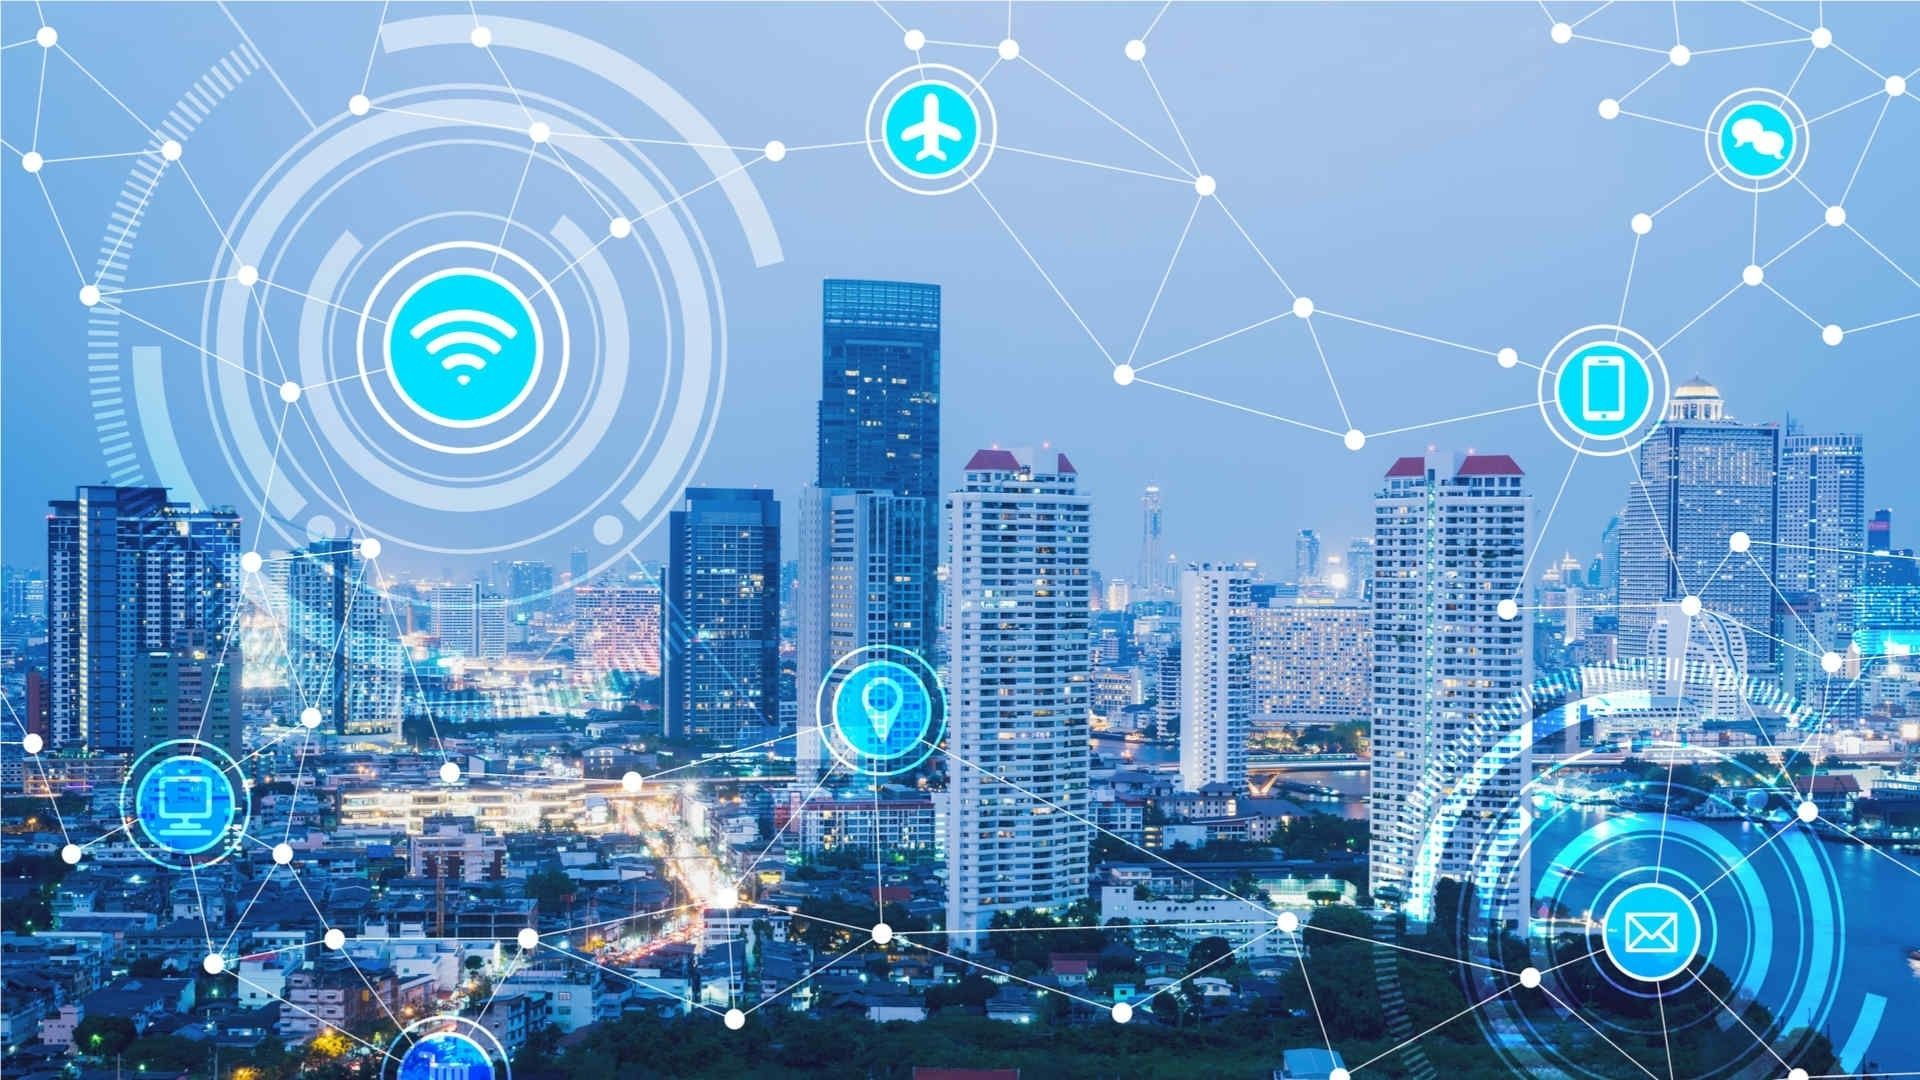 LA CITTA' DEL FUTURO È SMART: COS'E' DAVVERO UNA SMART CITY?